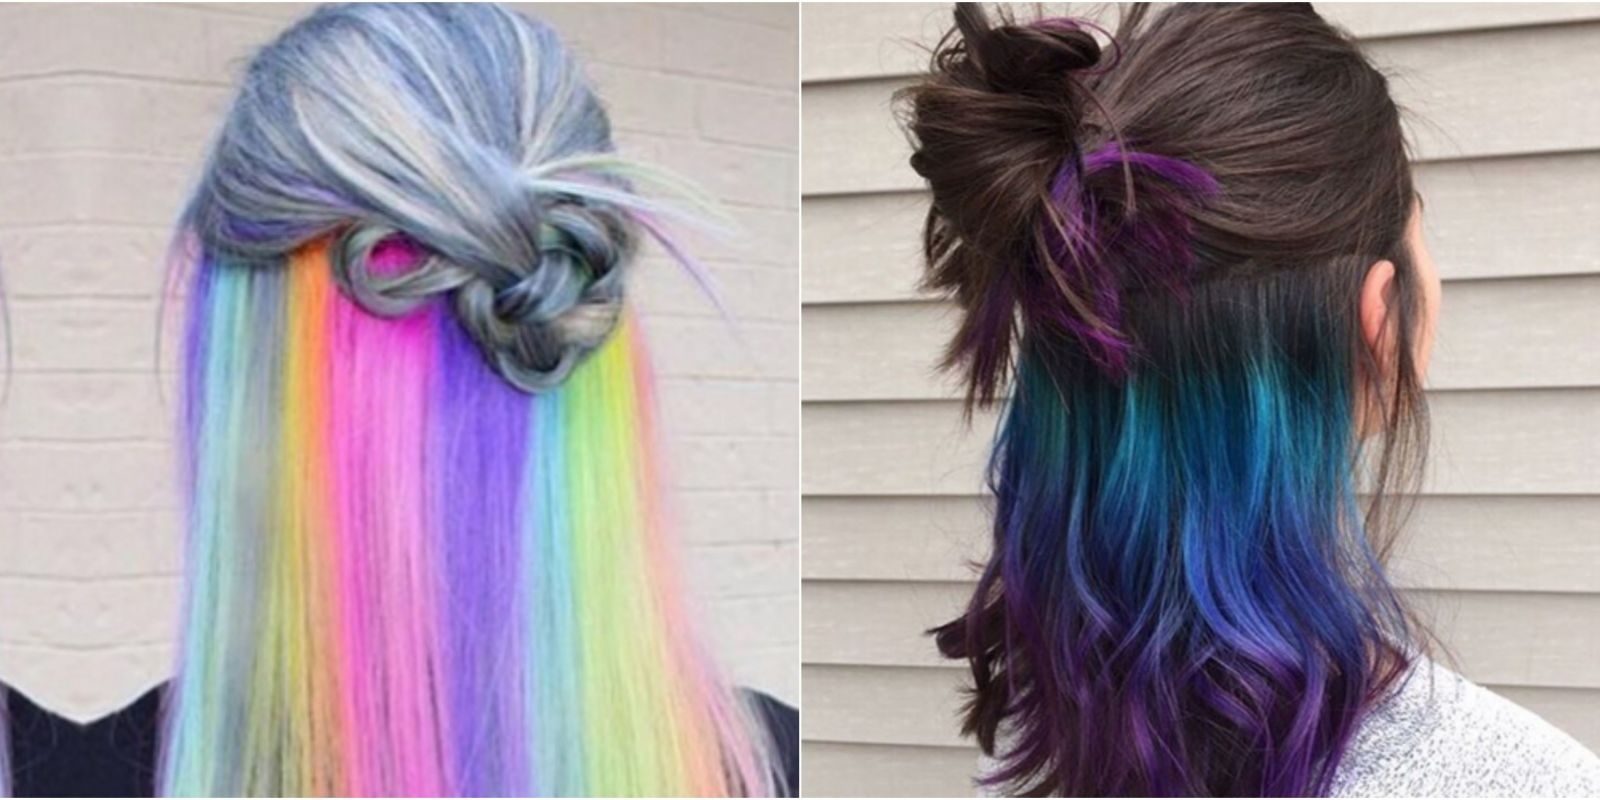 Fabulous The Underlights Hair Color Trend Secret Rainbow Hair Color Hairstyle Inspiration Daily Dogsangcom